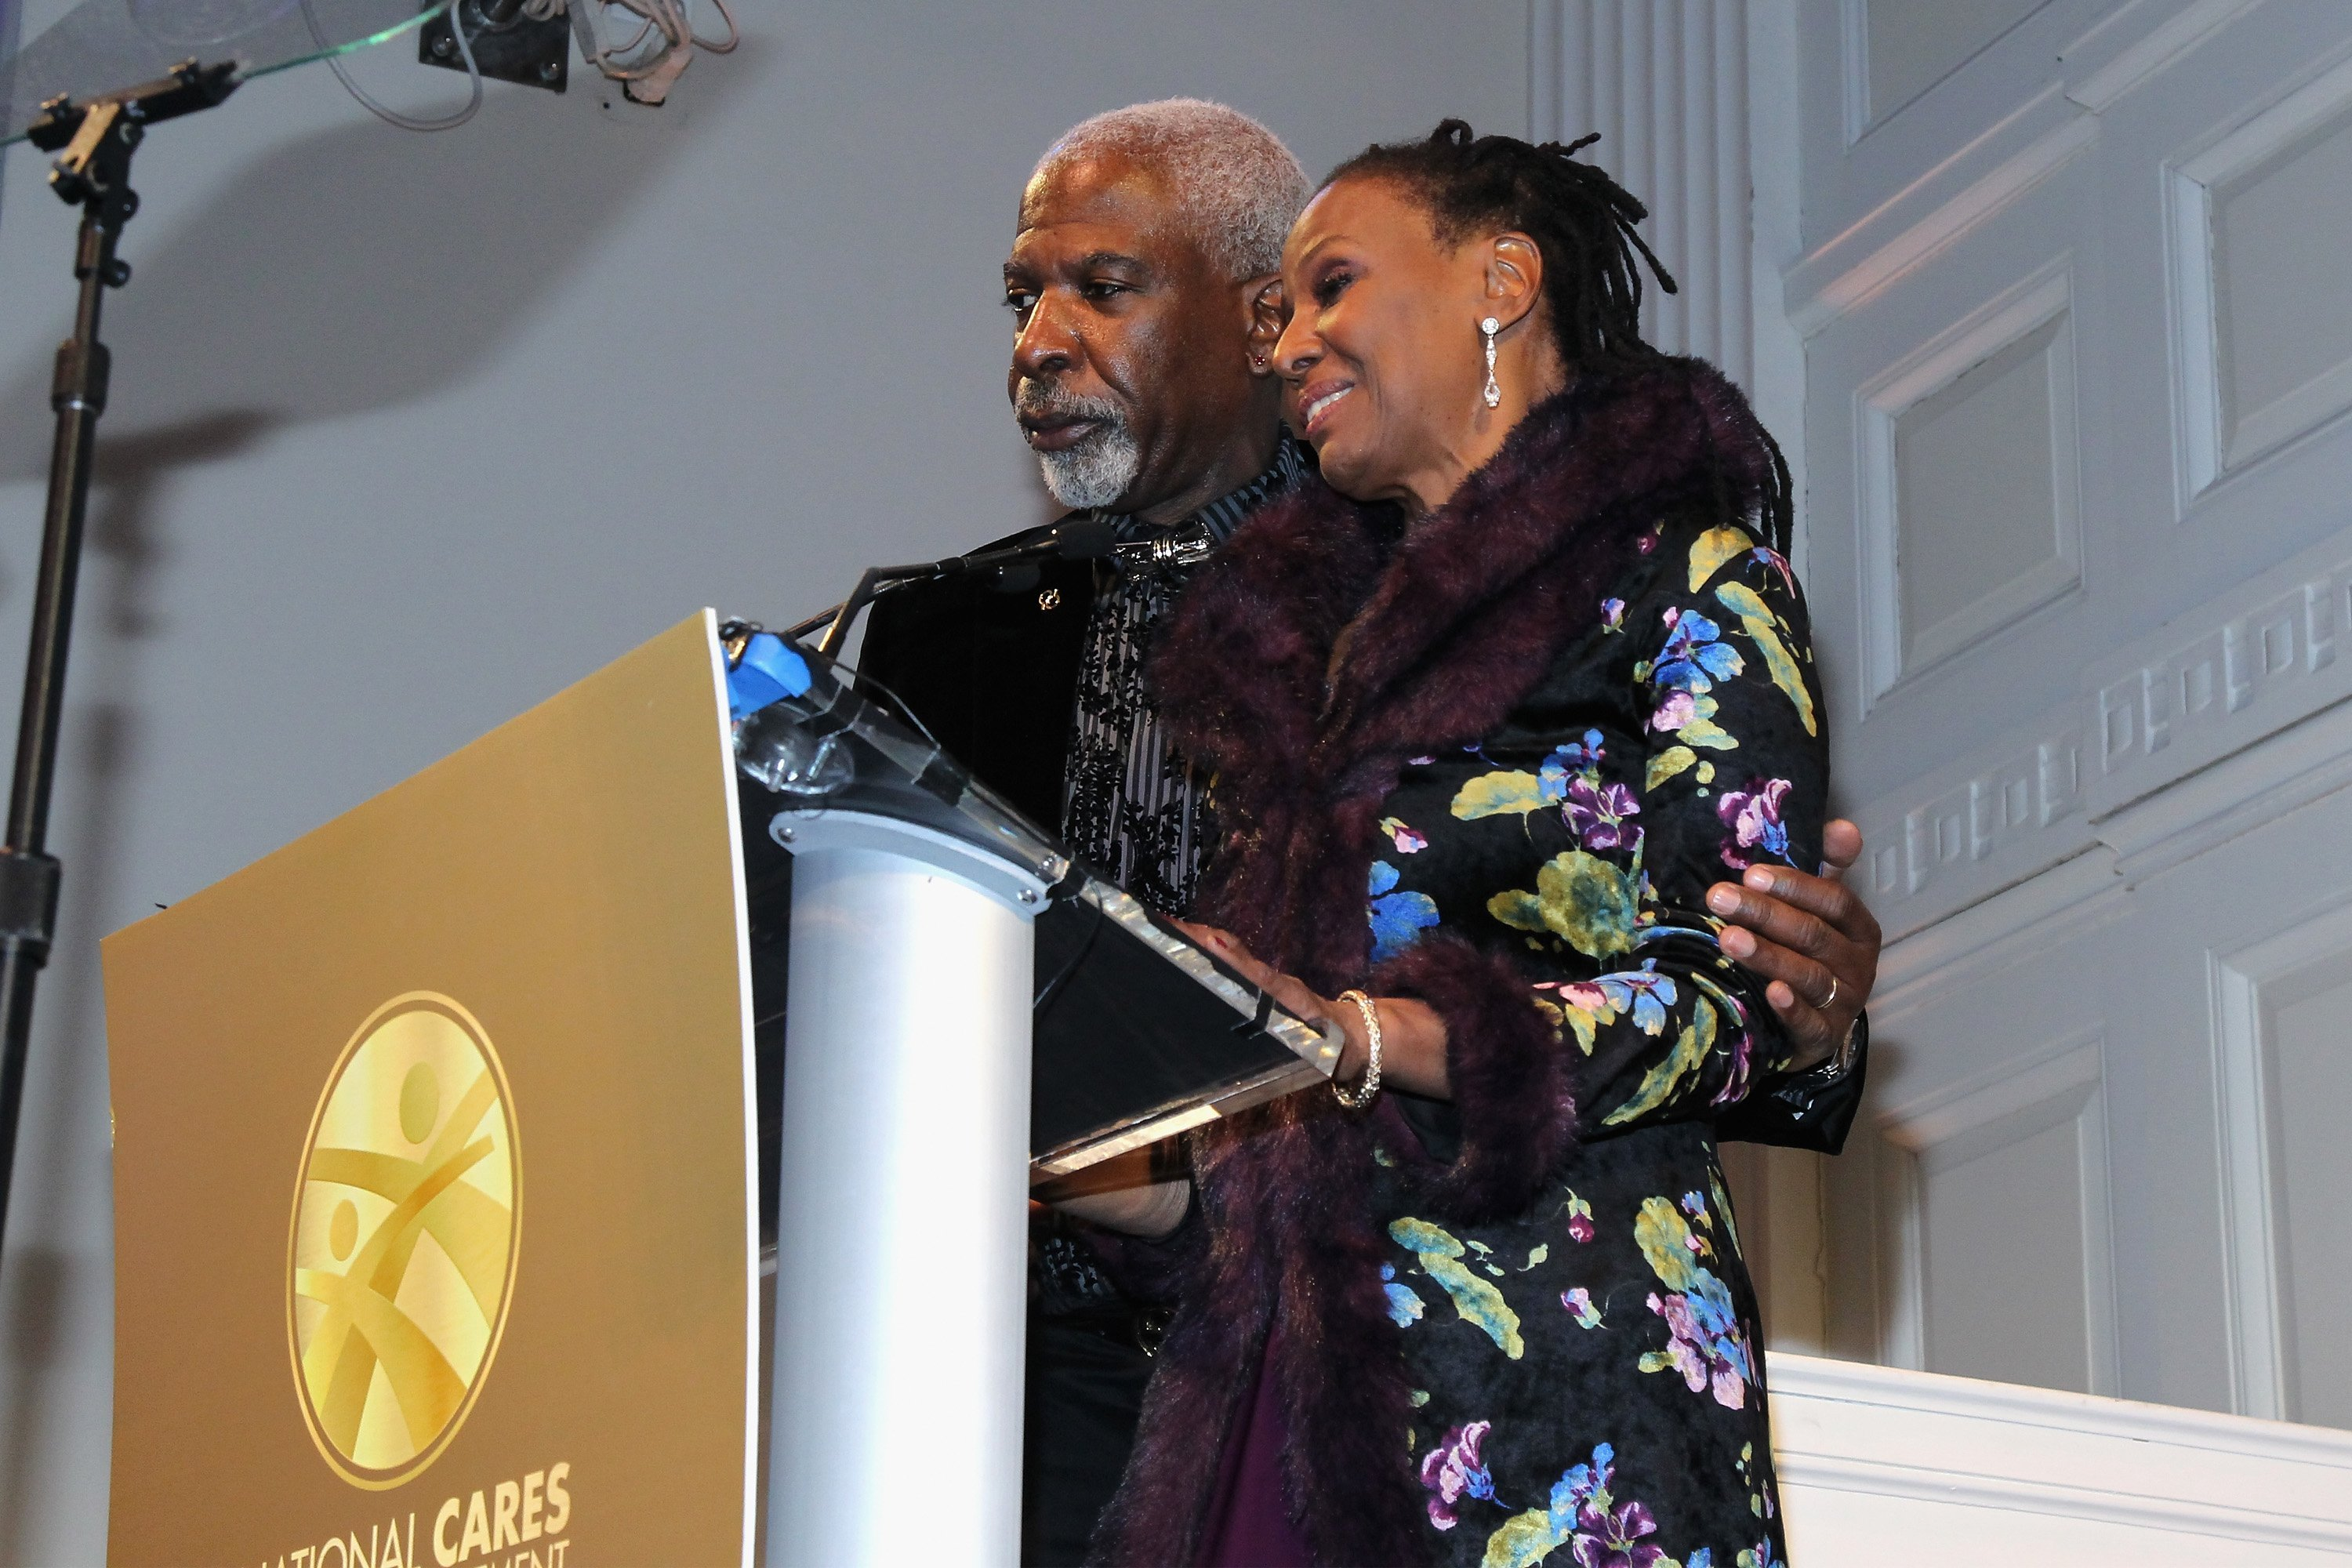 Dan Gasby and B. Smith speak at National CARES Mentoring Movement event in 2016 | Getty Images